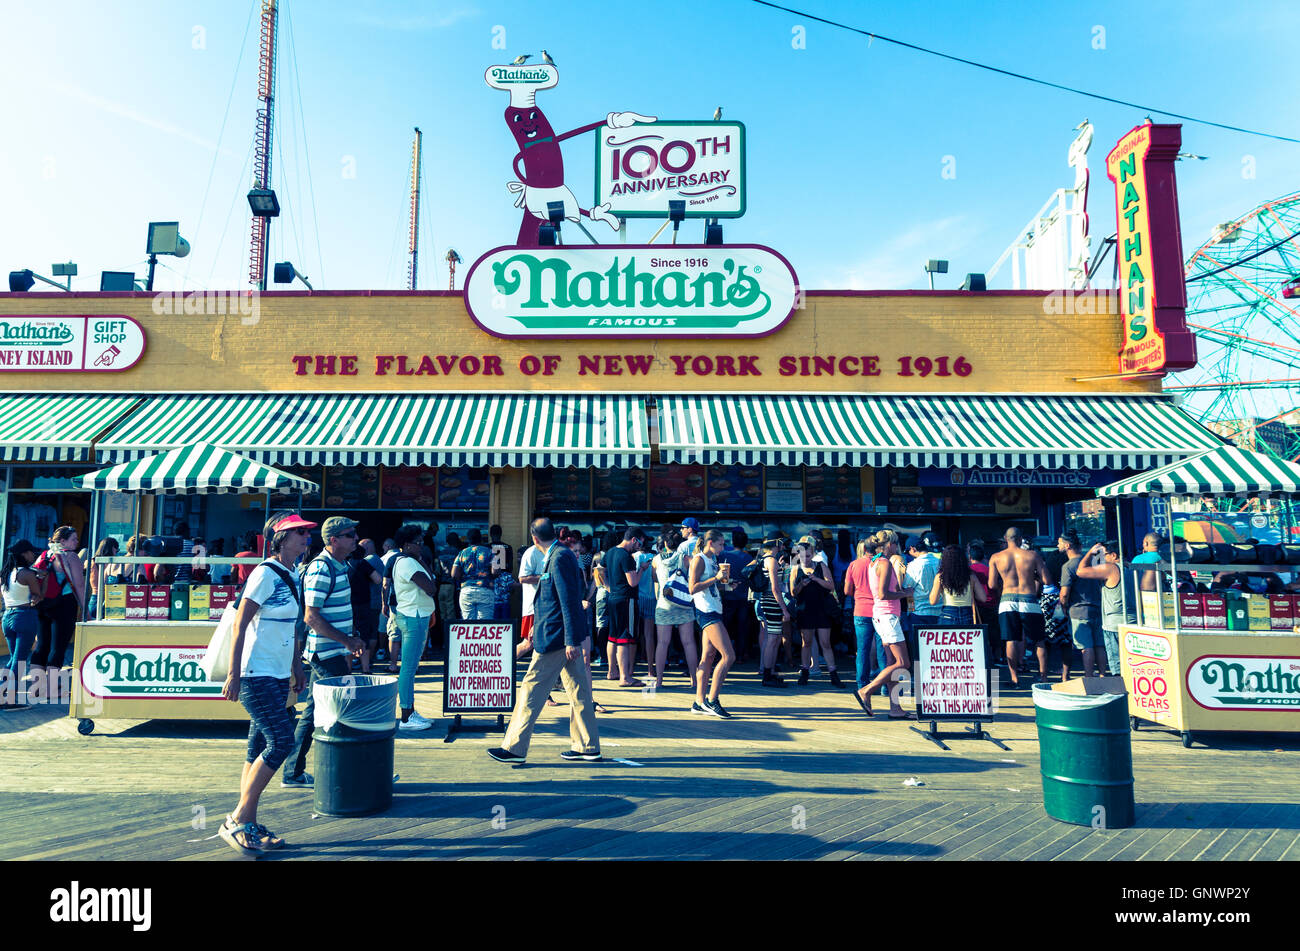 Exterior view of iconic Nathan's Famous hotdog joint on Coney Island boardwalk in Summer, New York in vintage - Stock Image